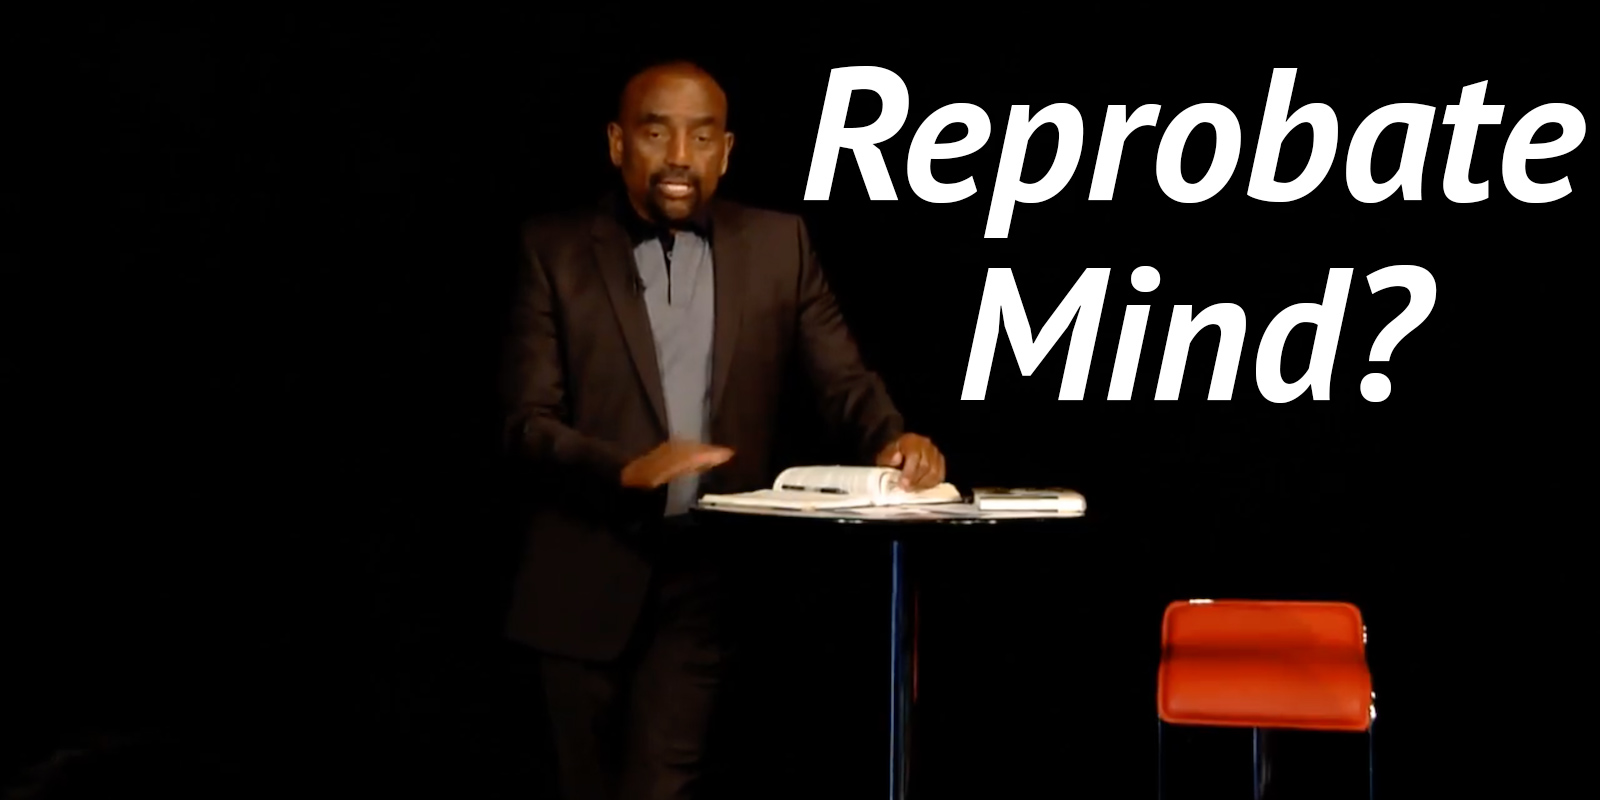 Reprobate mind and homosexuality